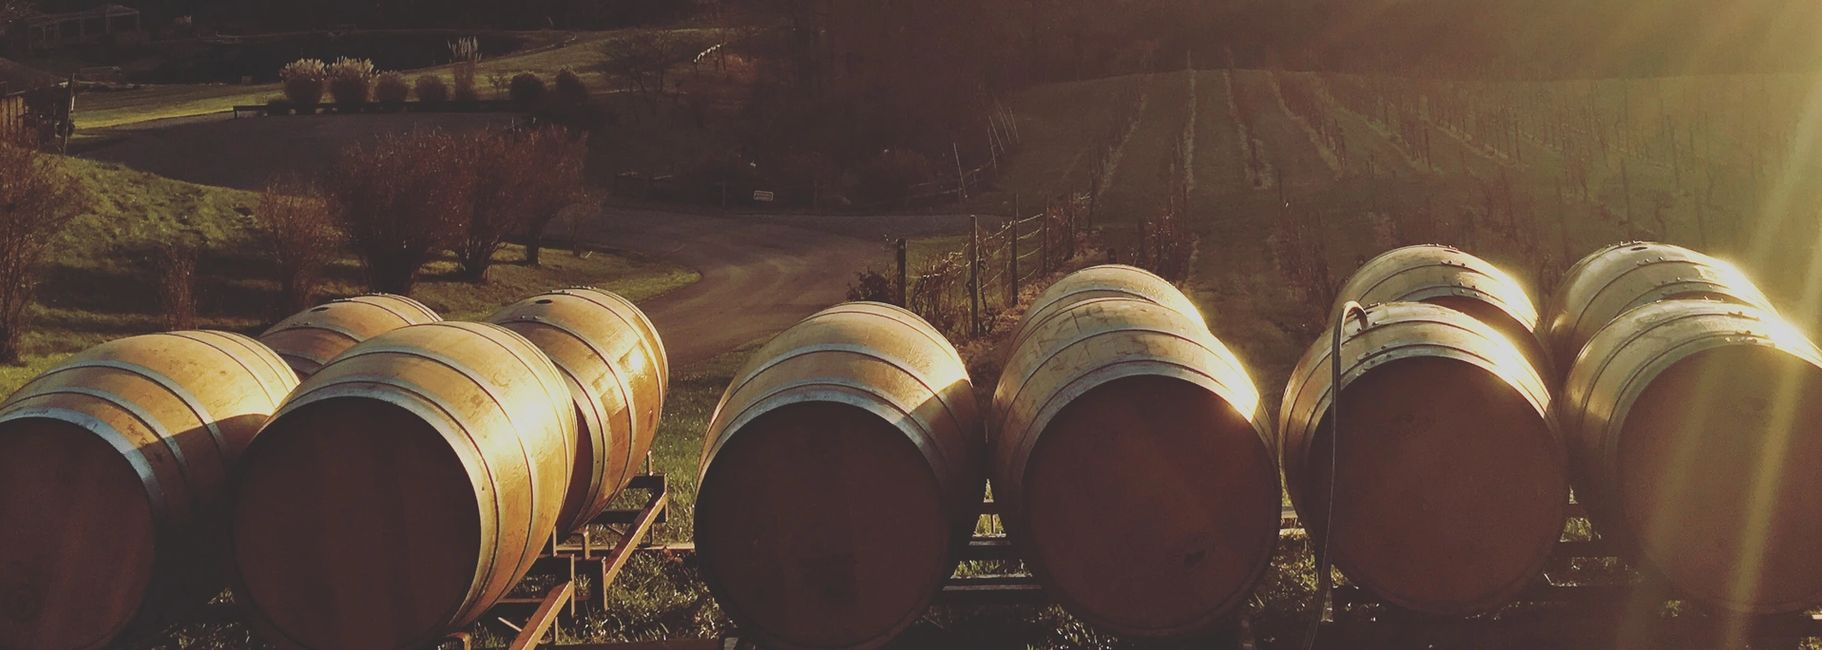 wines barrels as the sunsets